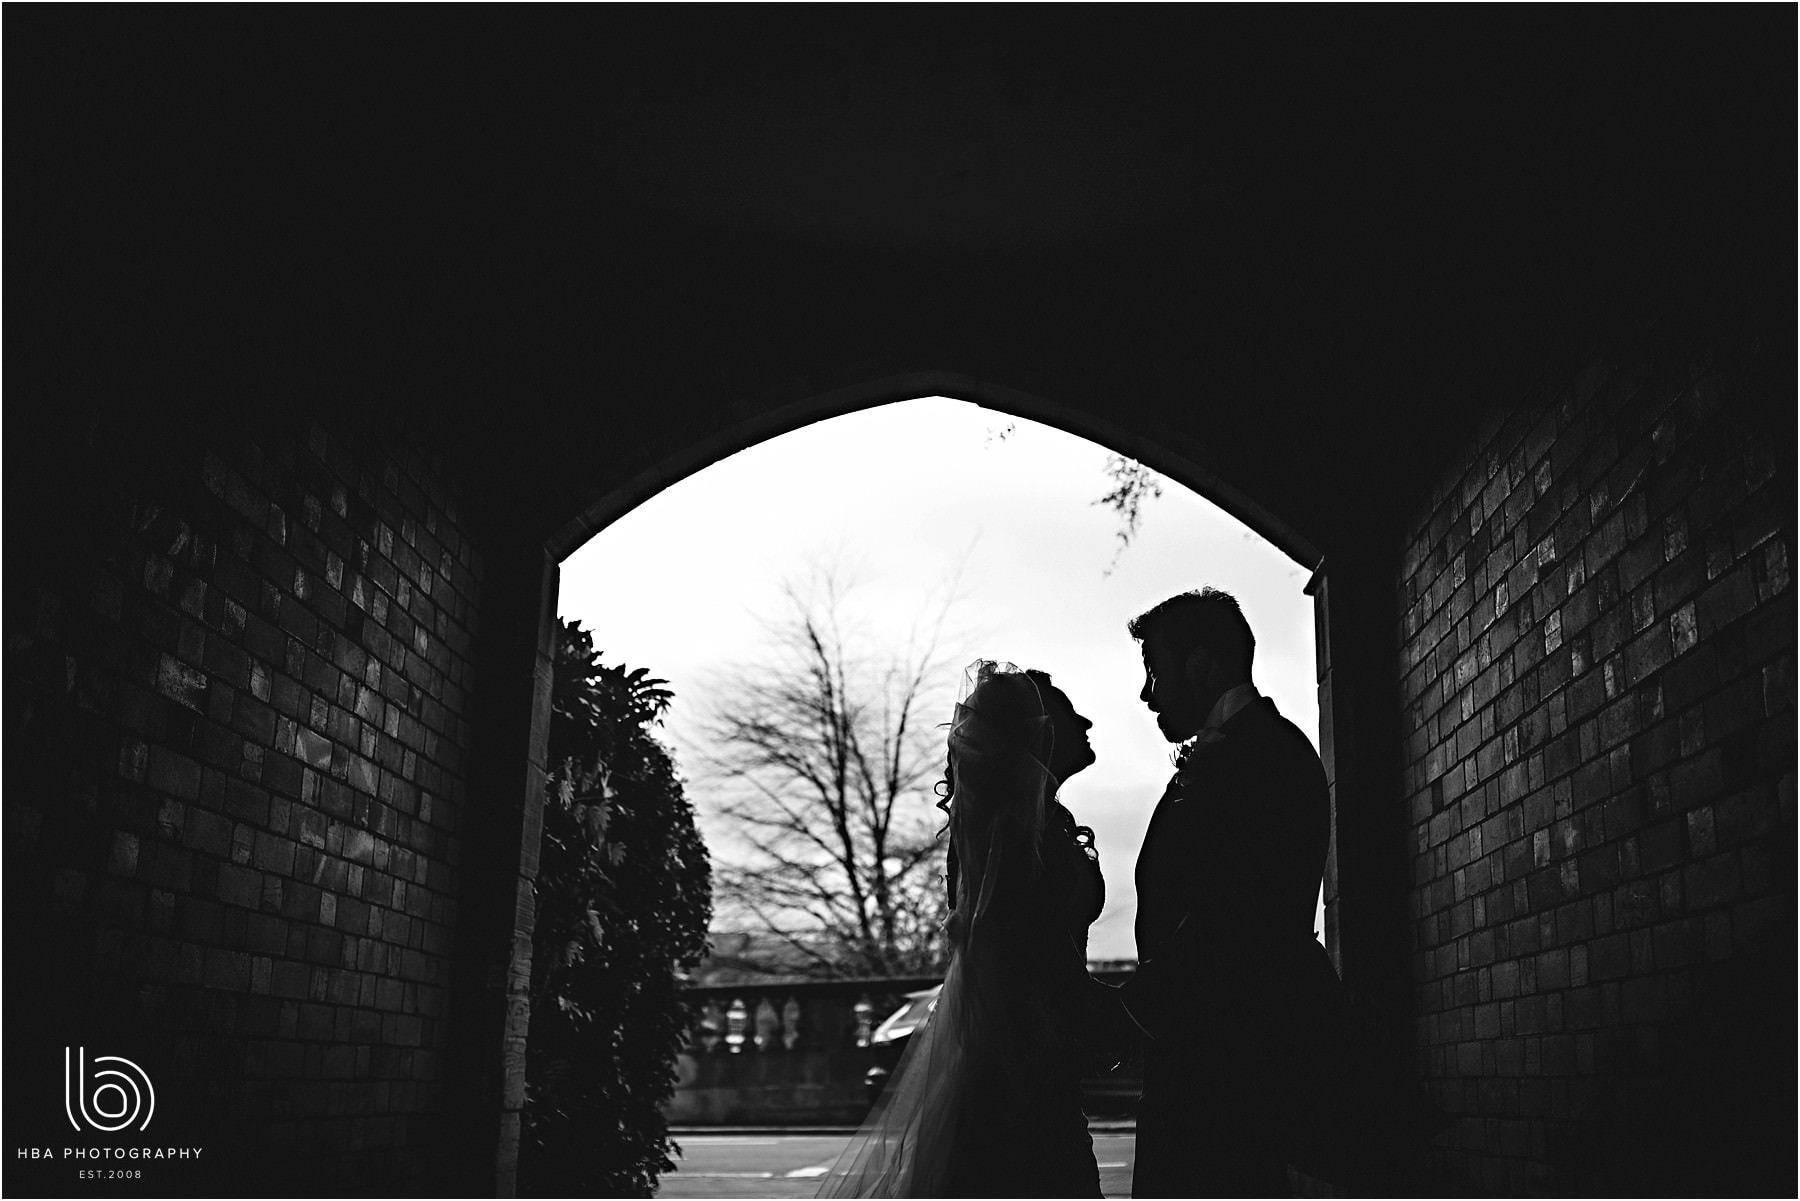 the bride and groom in silhouette at the church